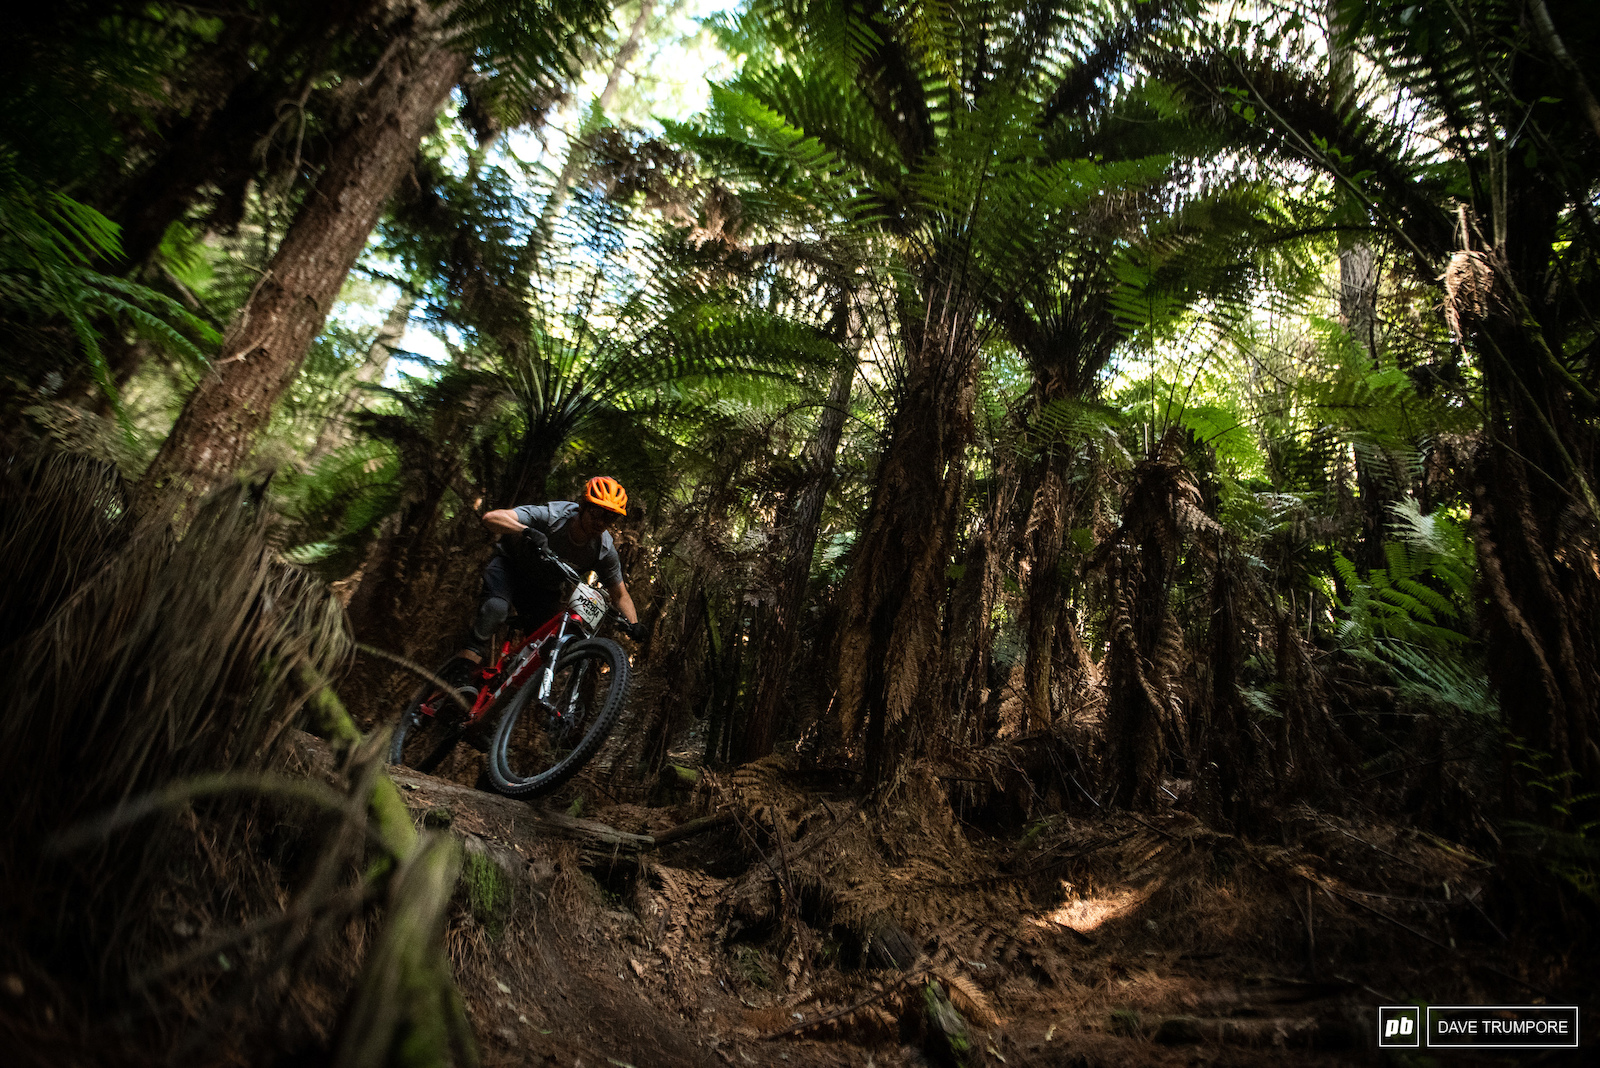 Dropping through the forest on stage 4.